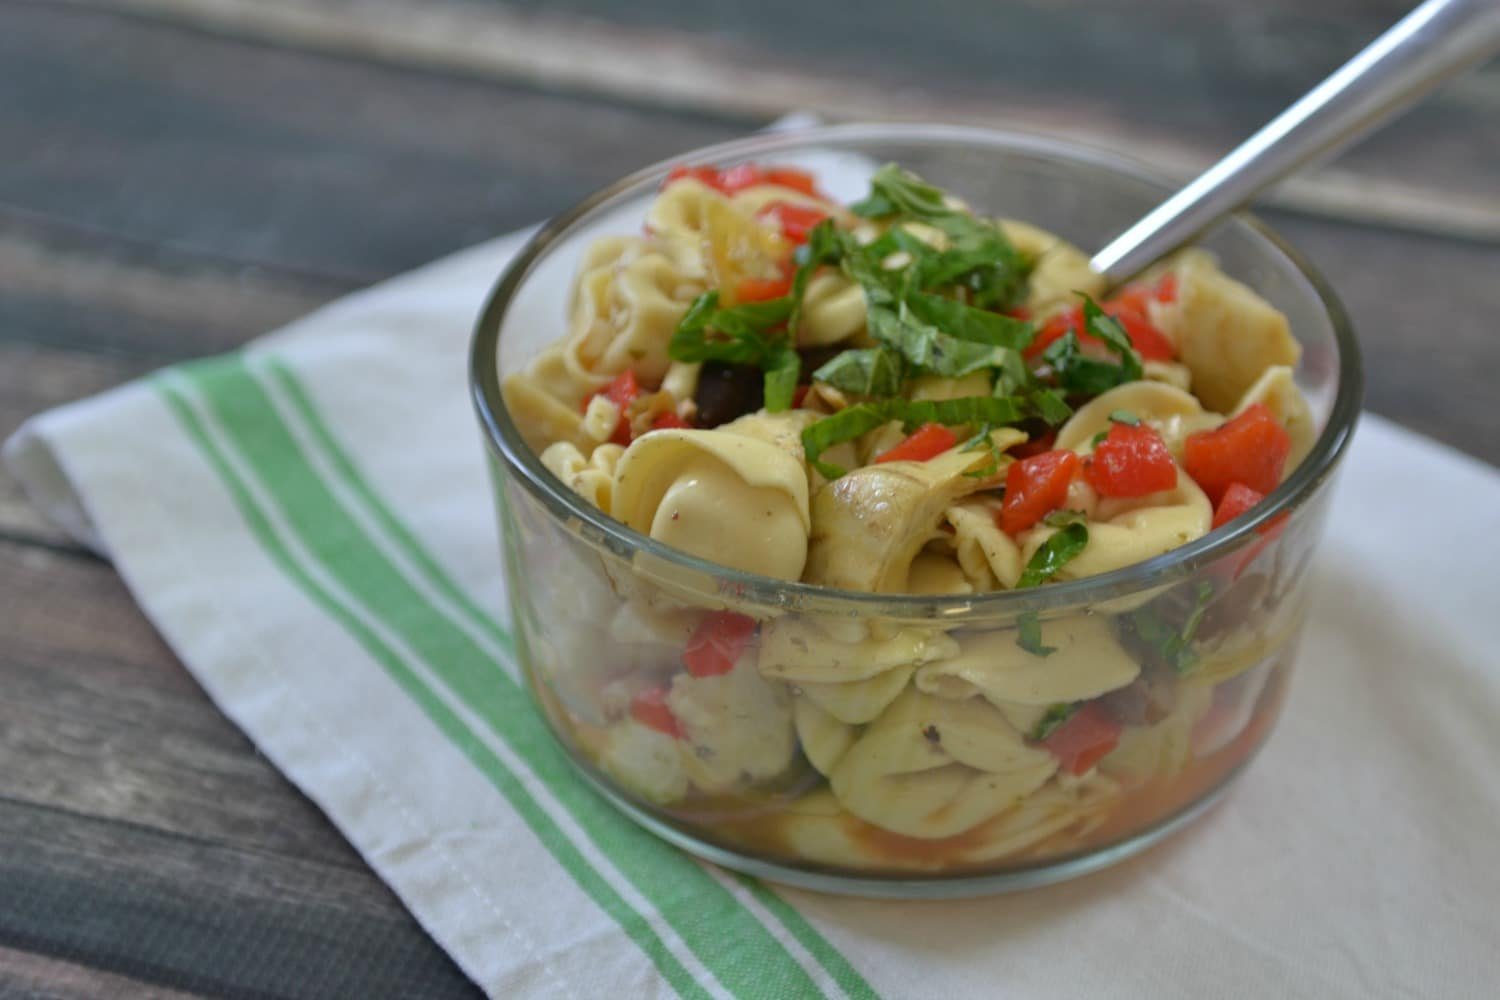 This tortellini salad is the perfect summer salad.